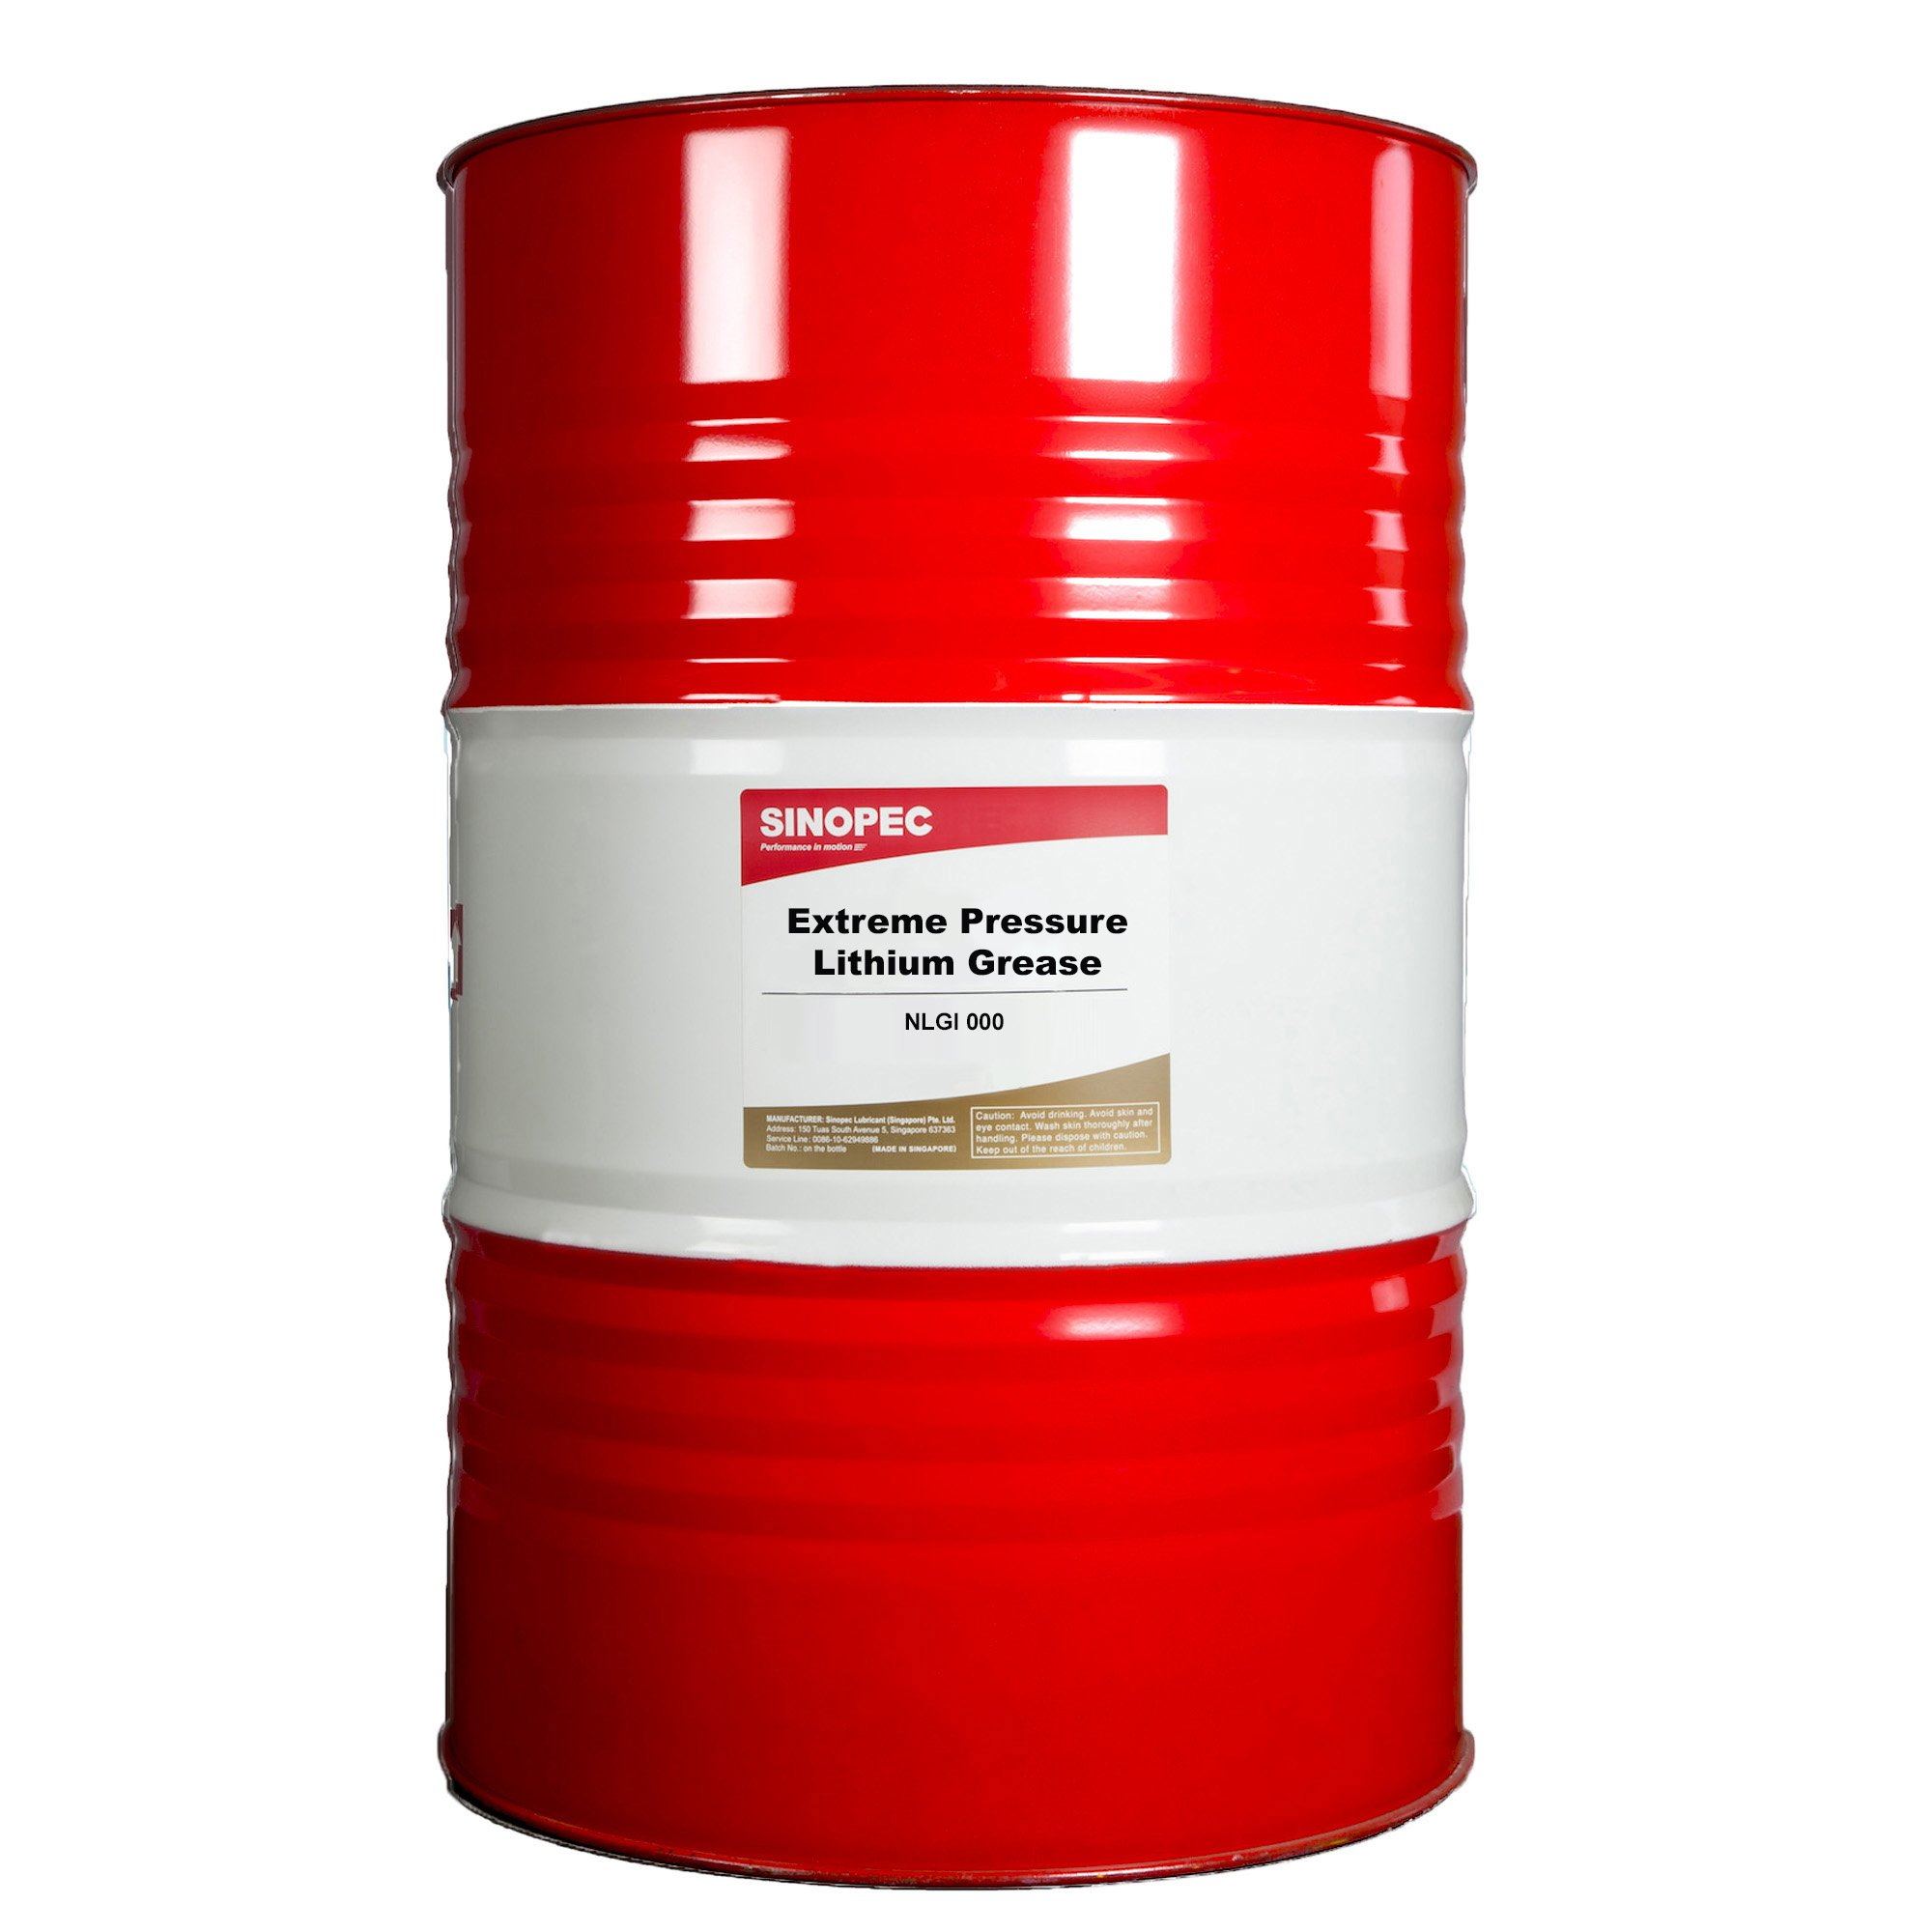 Sinopec EP000 Semi-Fluid EP Lithium Grease, 400 lb. by Sinopec